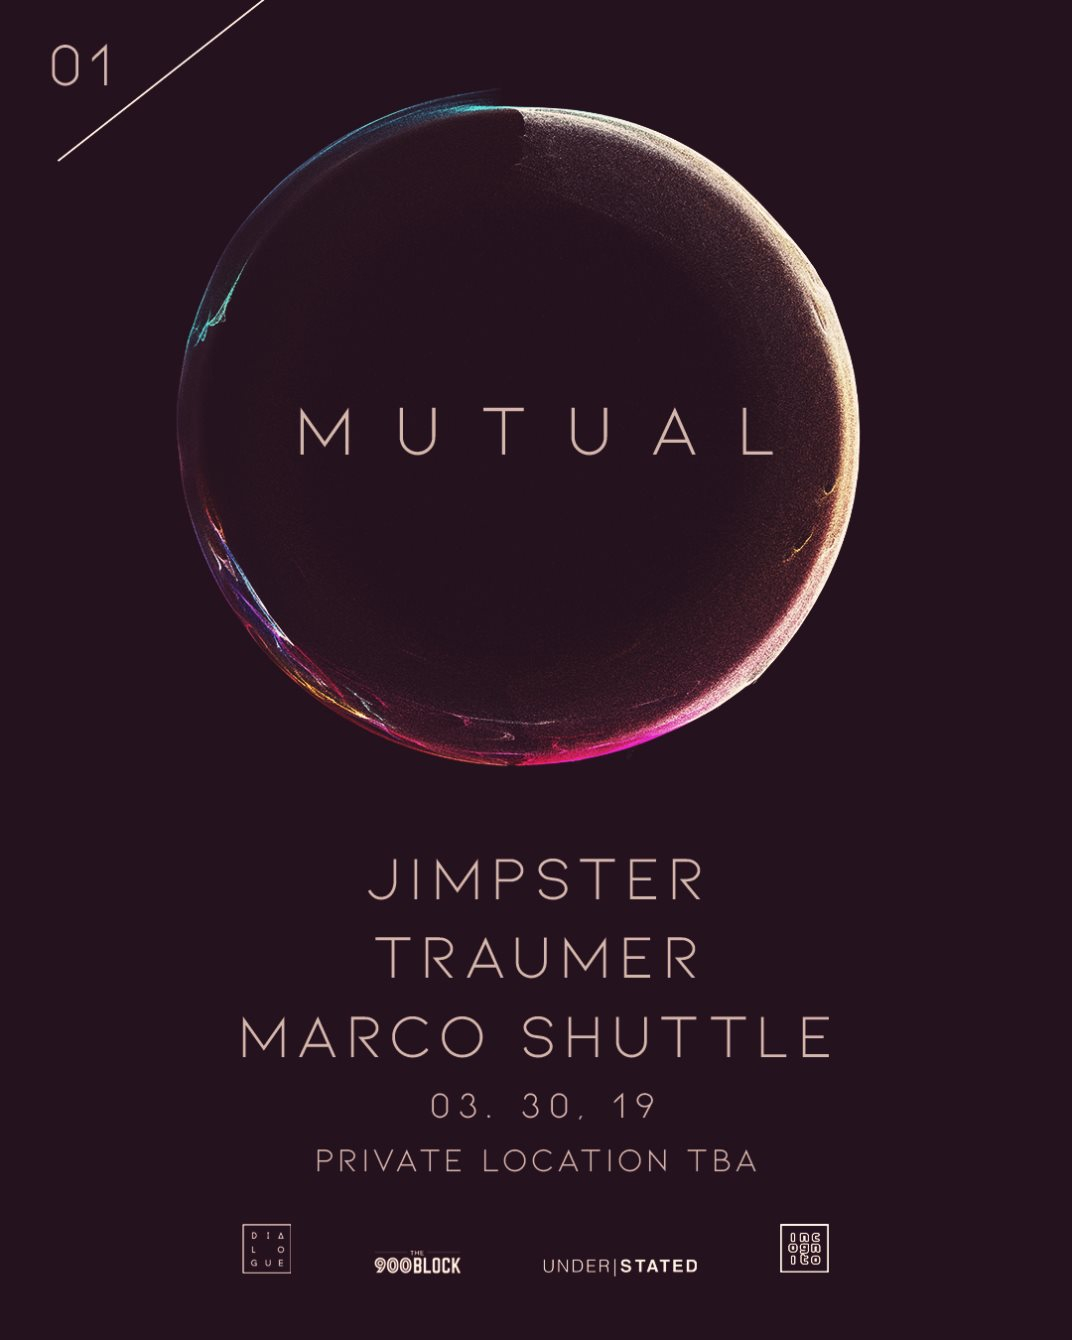 MUTUAL _ Jimpster, Traumer, and Marco Shuttle - Flyer back